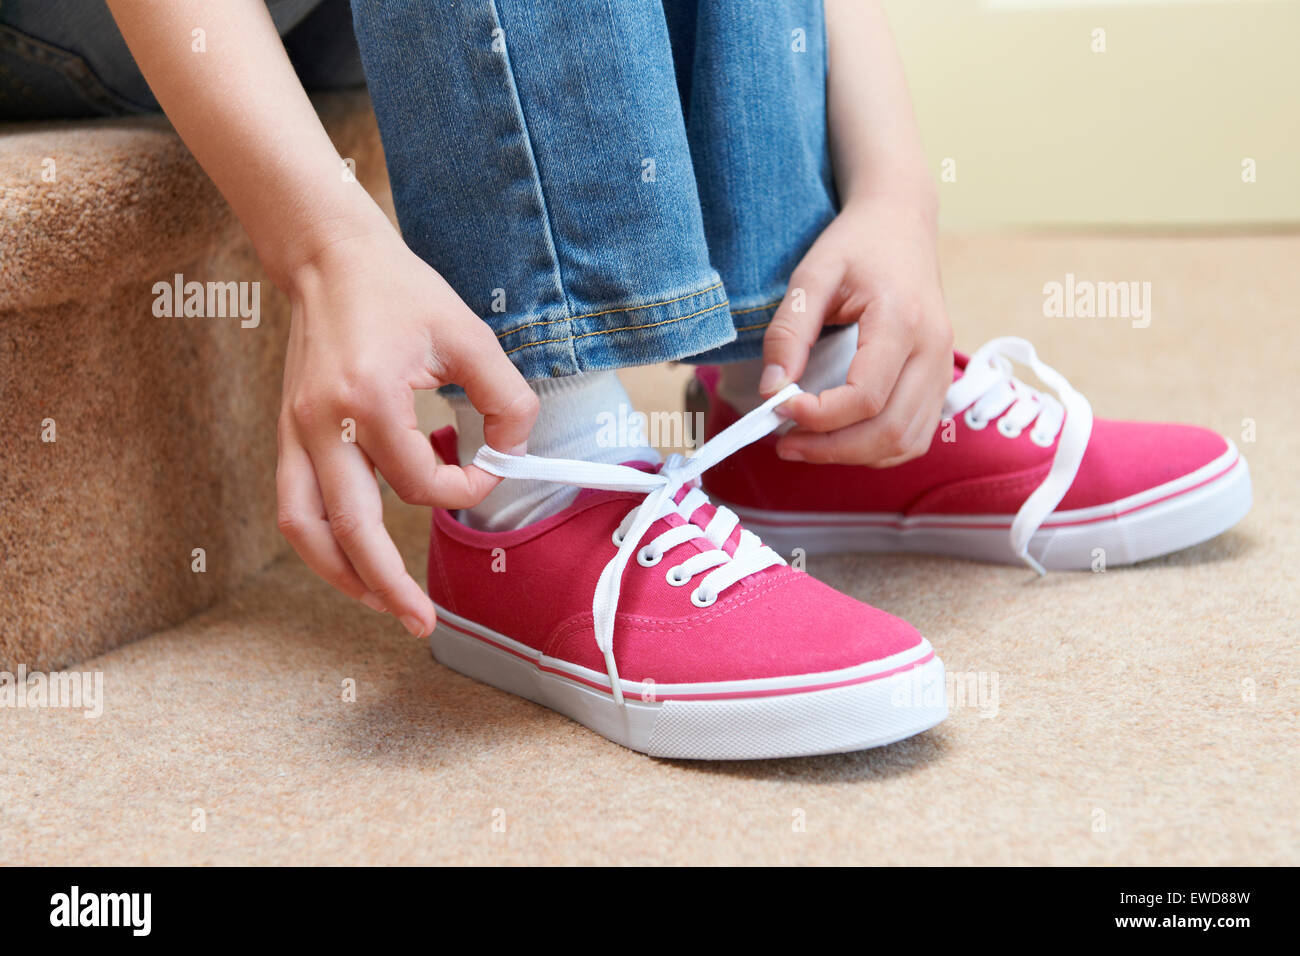 Girl Sitting On Stairs And Tying Shoelaces - Stock Image